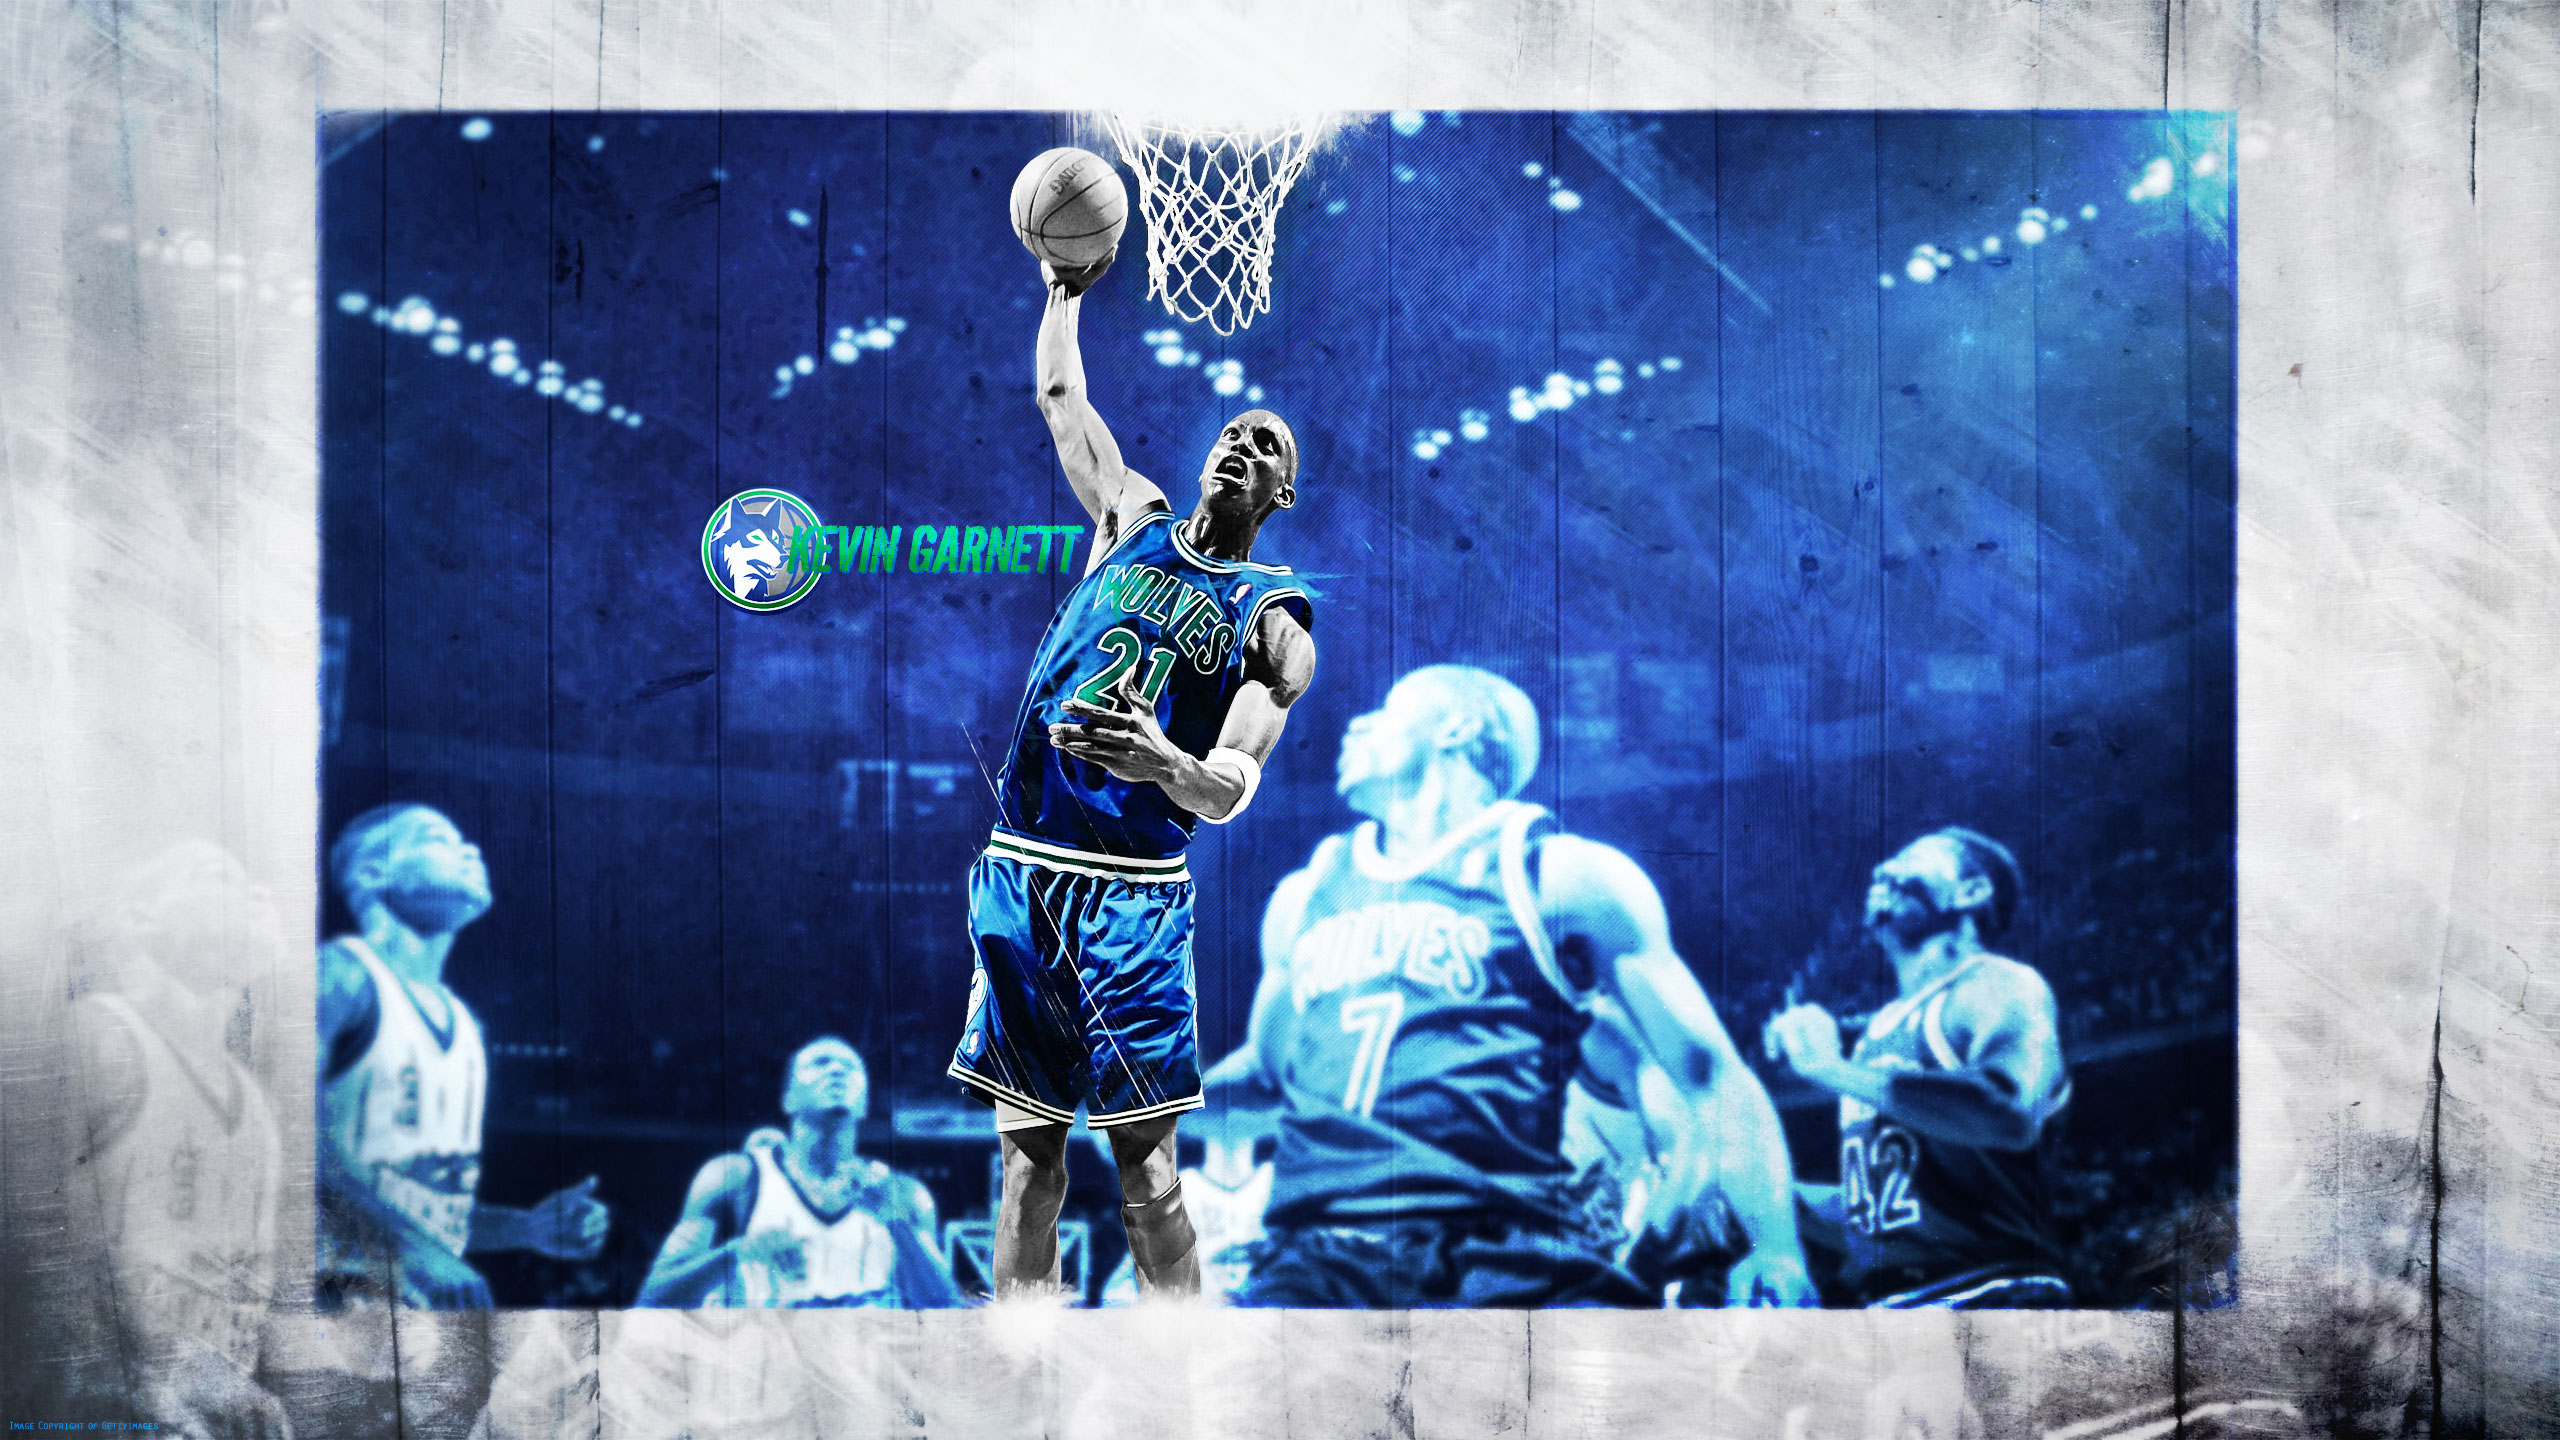 Kevin Garnett Wallpapers Basketball Wallpapers at 2560x1440